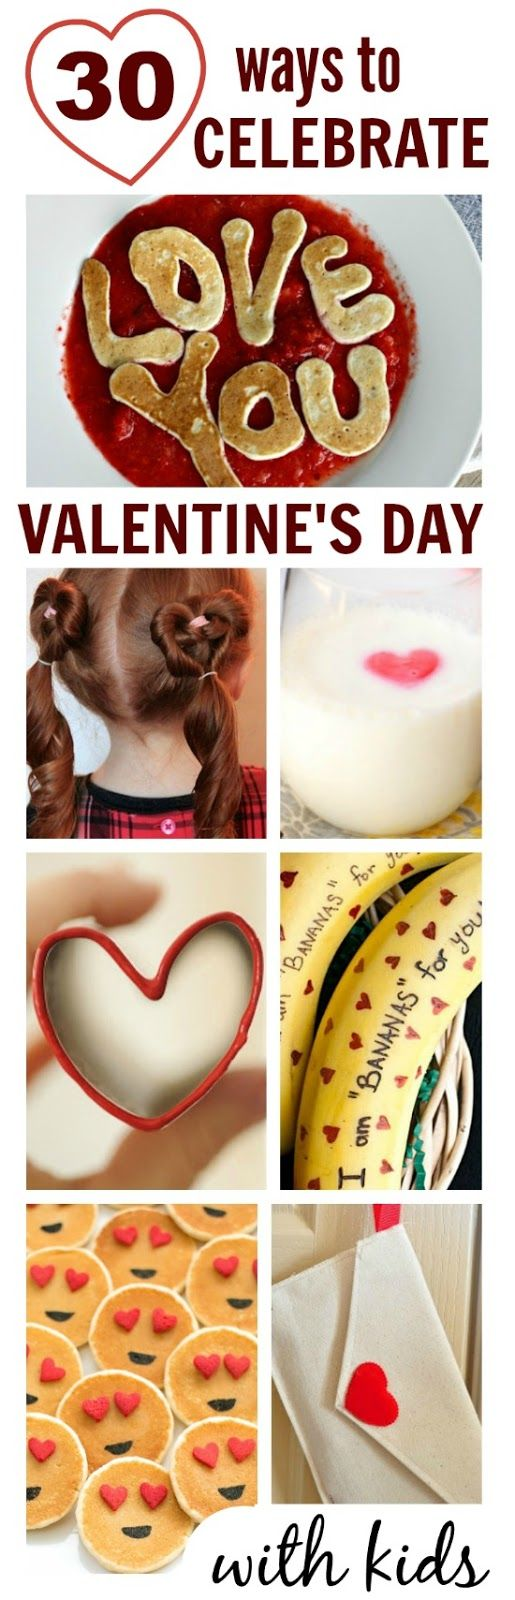 30 SIMPLE WAYS TO CELEBRATE VALENTINEu0027S DAY WITH KIDS. Can I Be A Kid Again